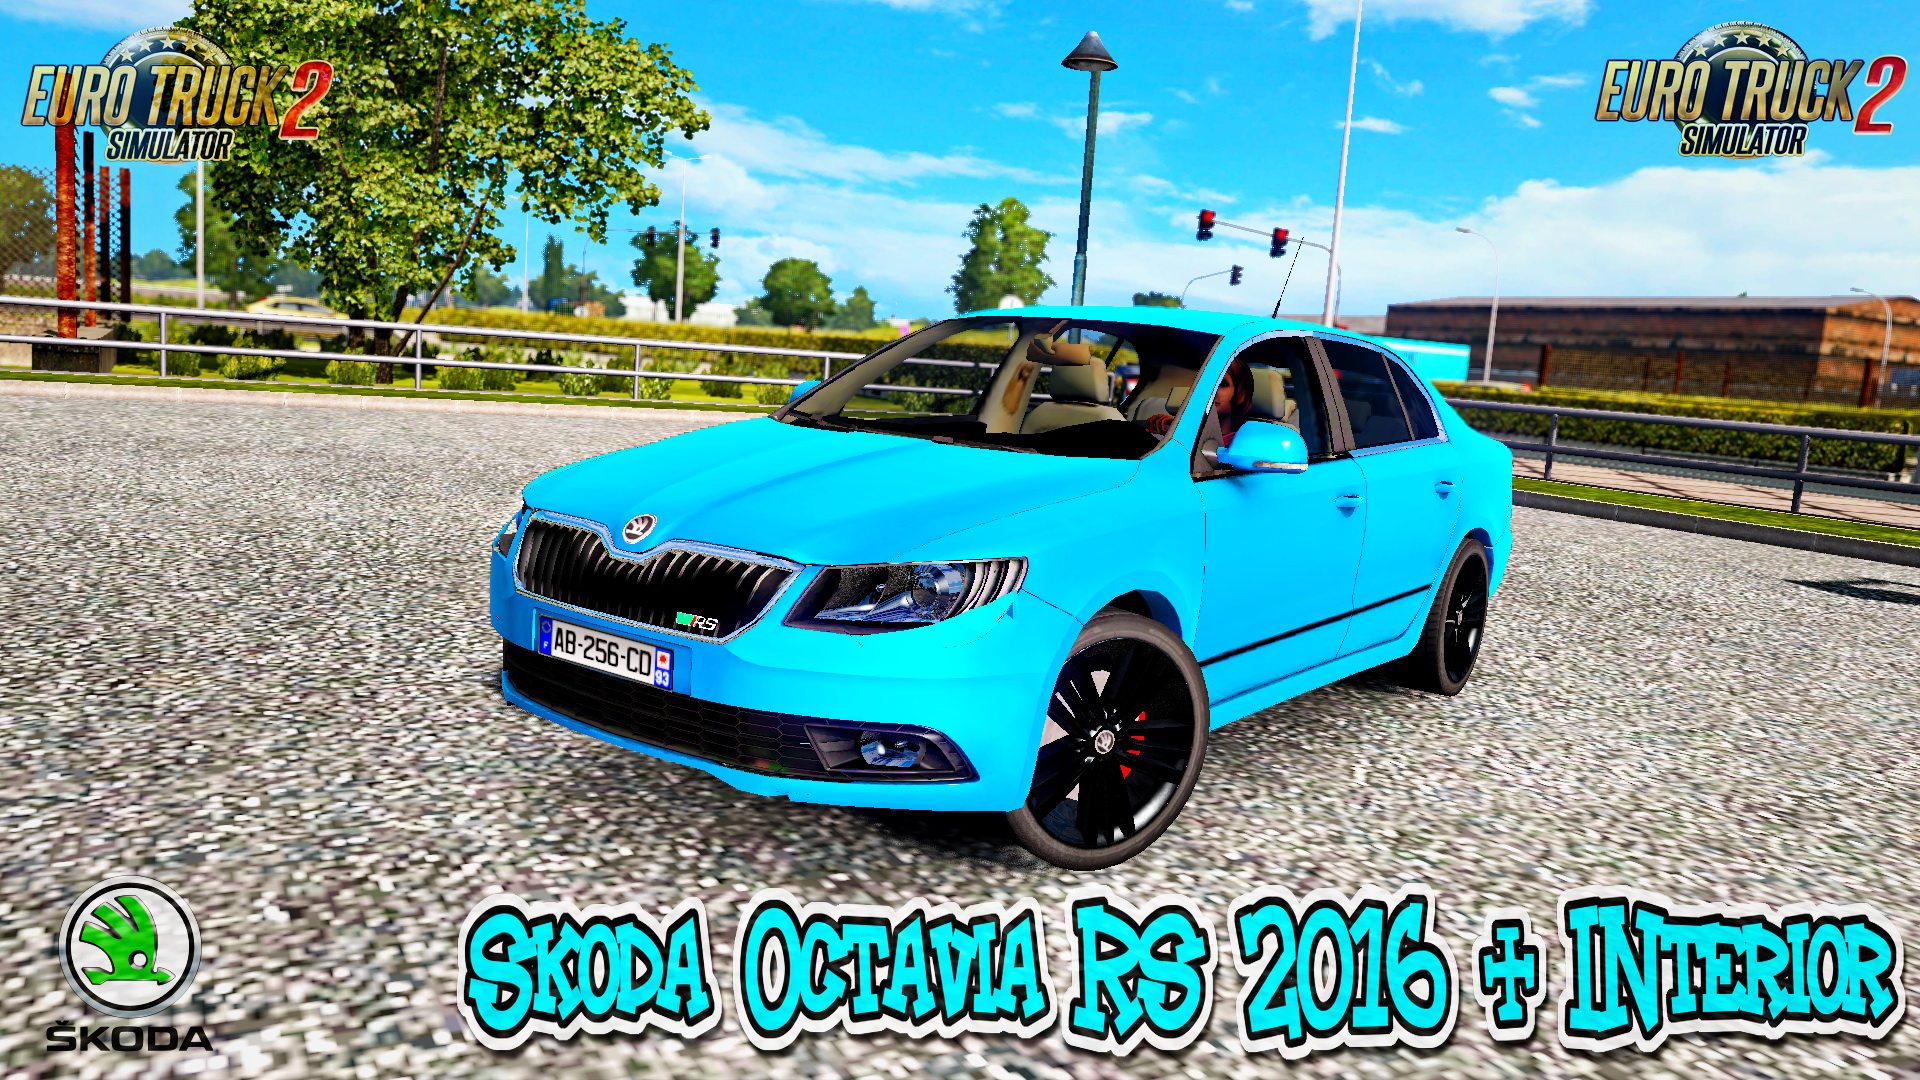 Skoda Octavia RS 2016 + Interior v1.0 (Updated Version) (1.27.x)